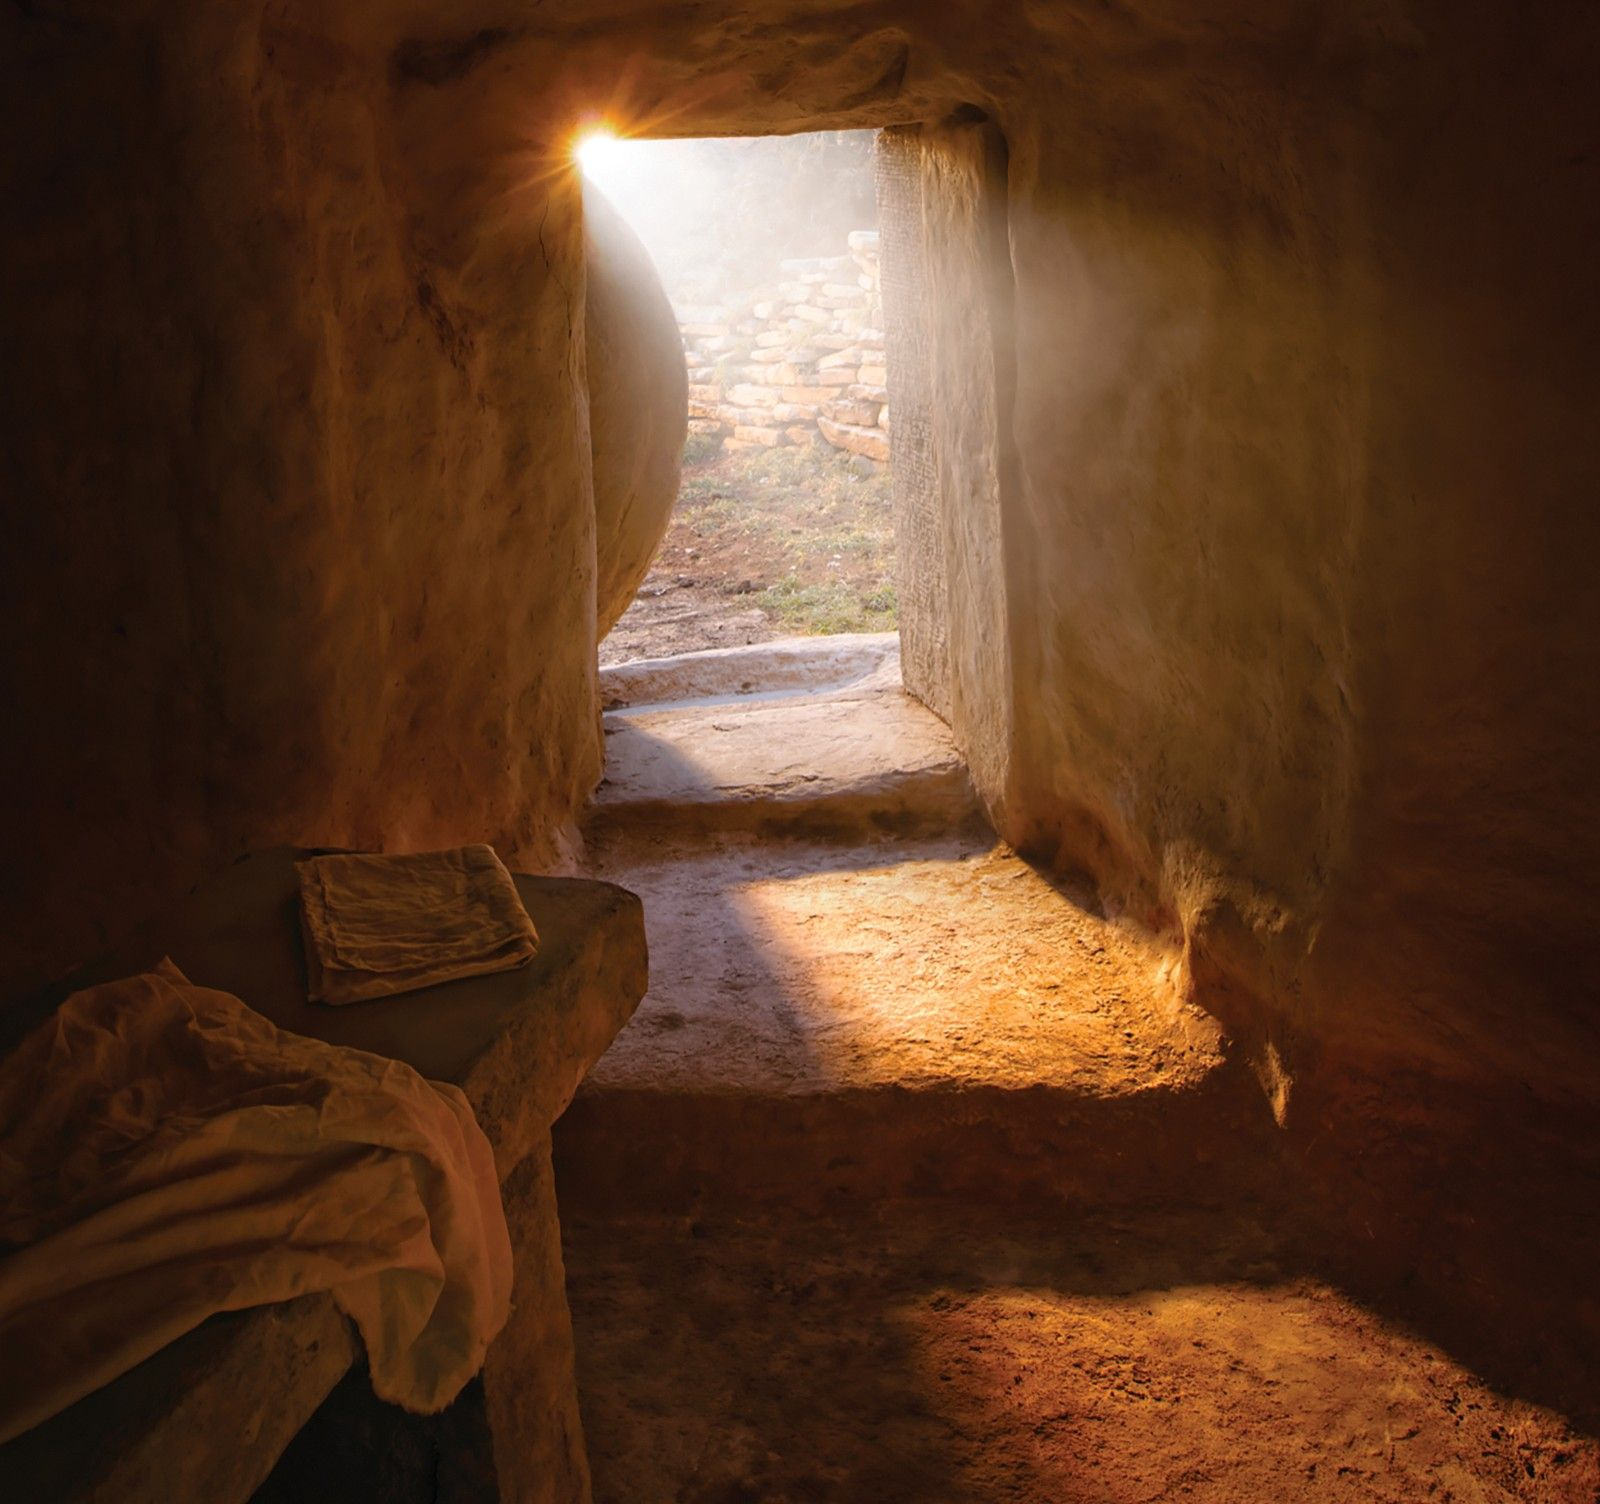 A portrayal of Christ's empty tomb after his resurrection.